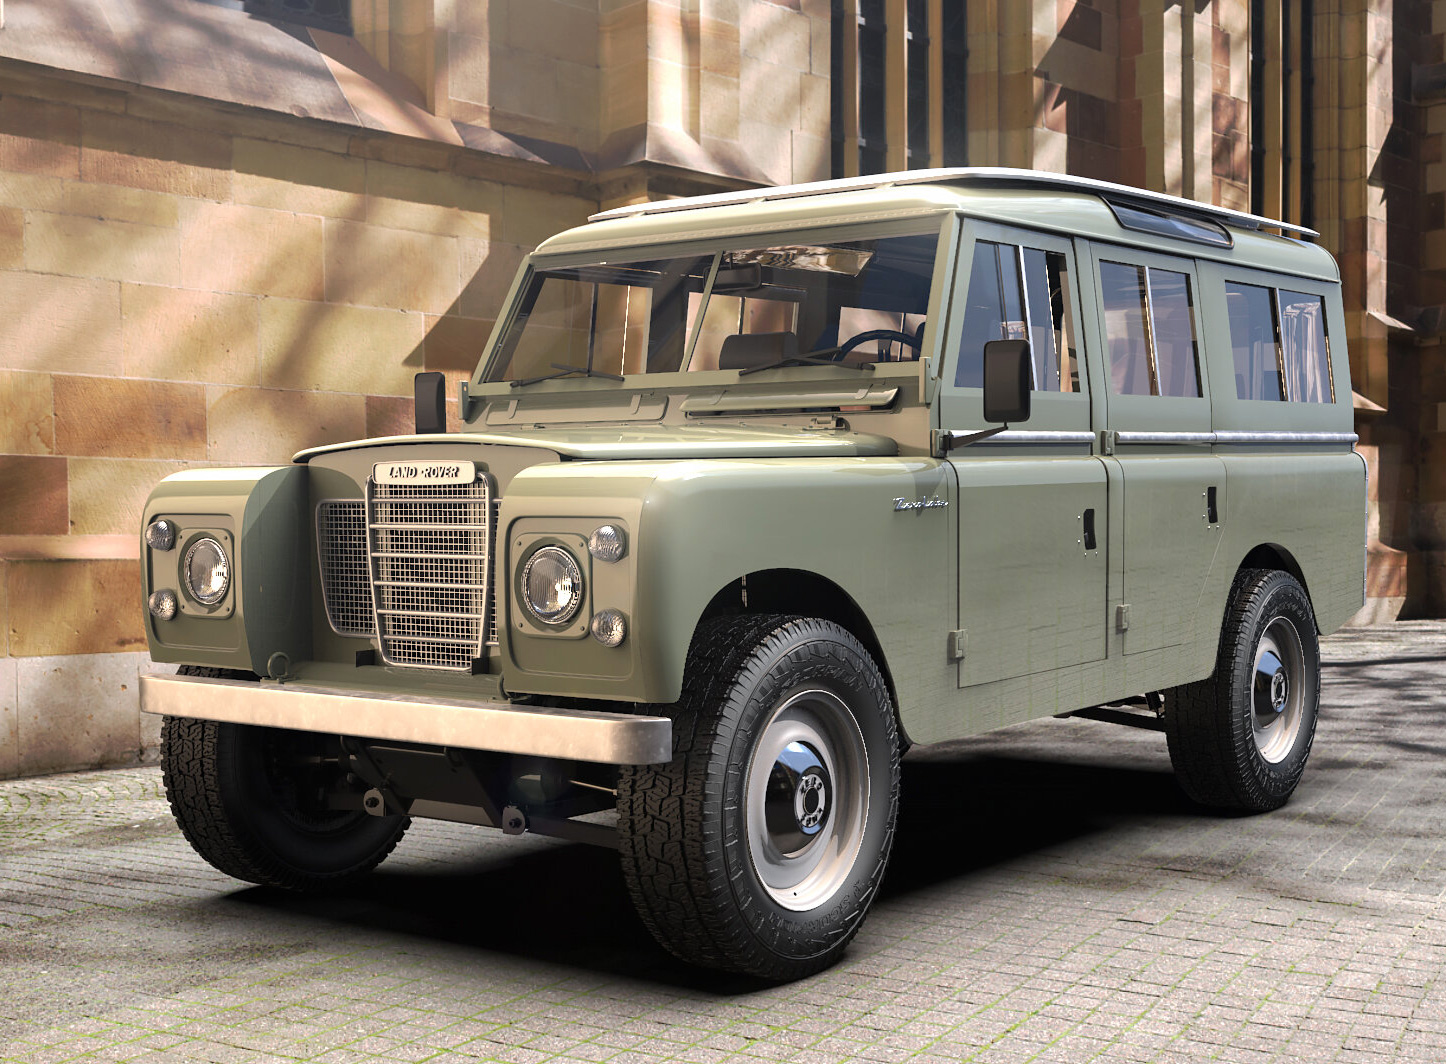 Zero Labs Electrifies the Classic Land Rover III at werd.com